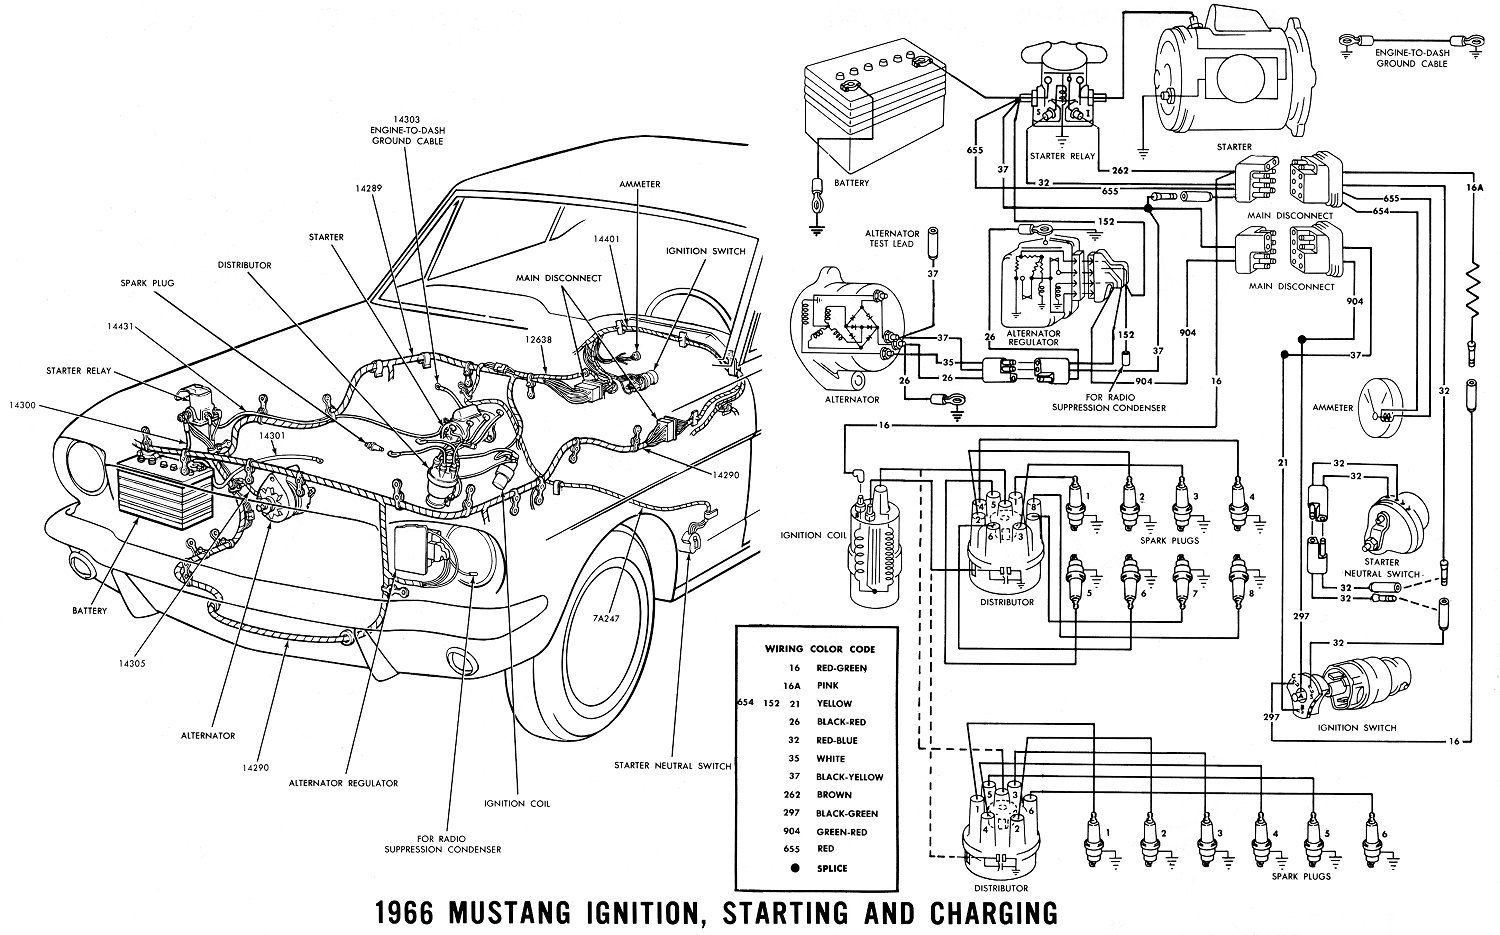 65 gt: ammeter pegged, and mystery white/black wire - ford mustang, Wiring diagram